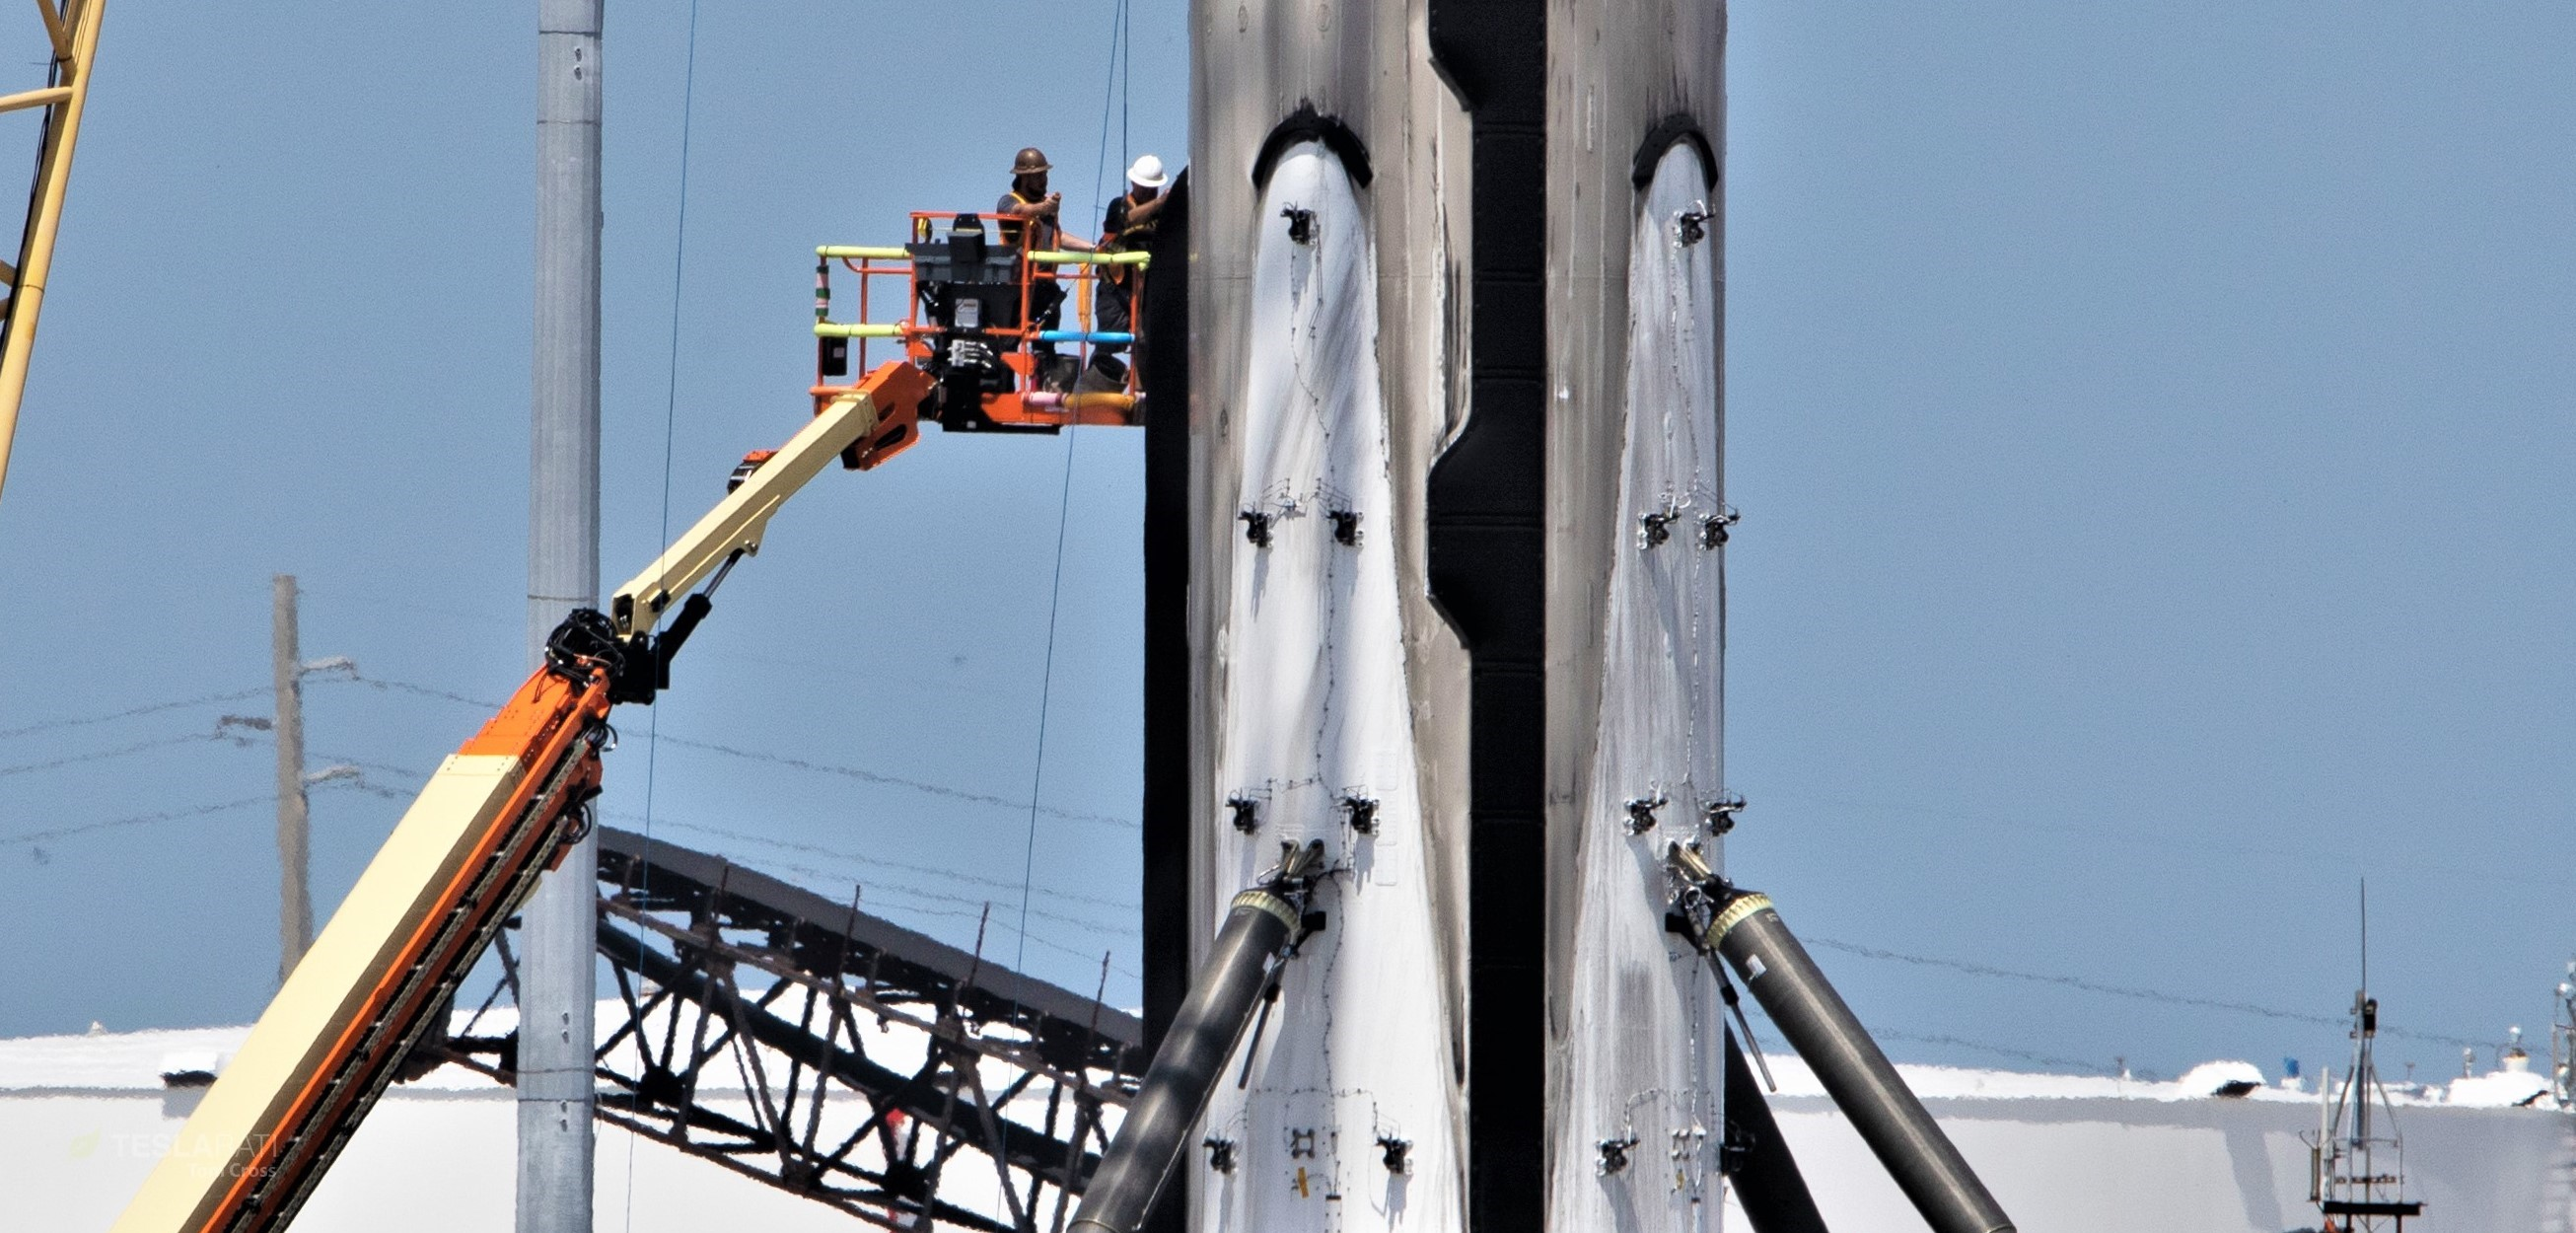 Falcon 9 b1056 leg retraction 1 of 4 050719 (Tom Cross) 2 crop